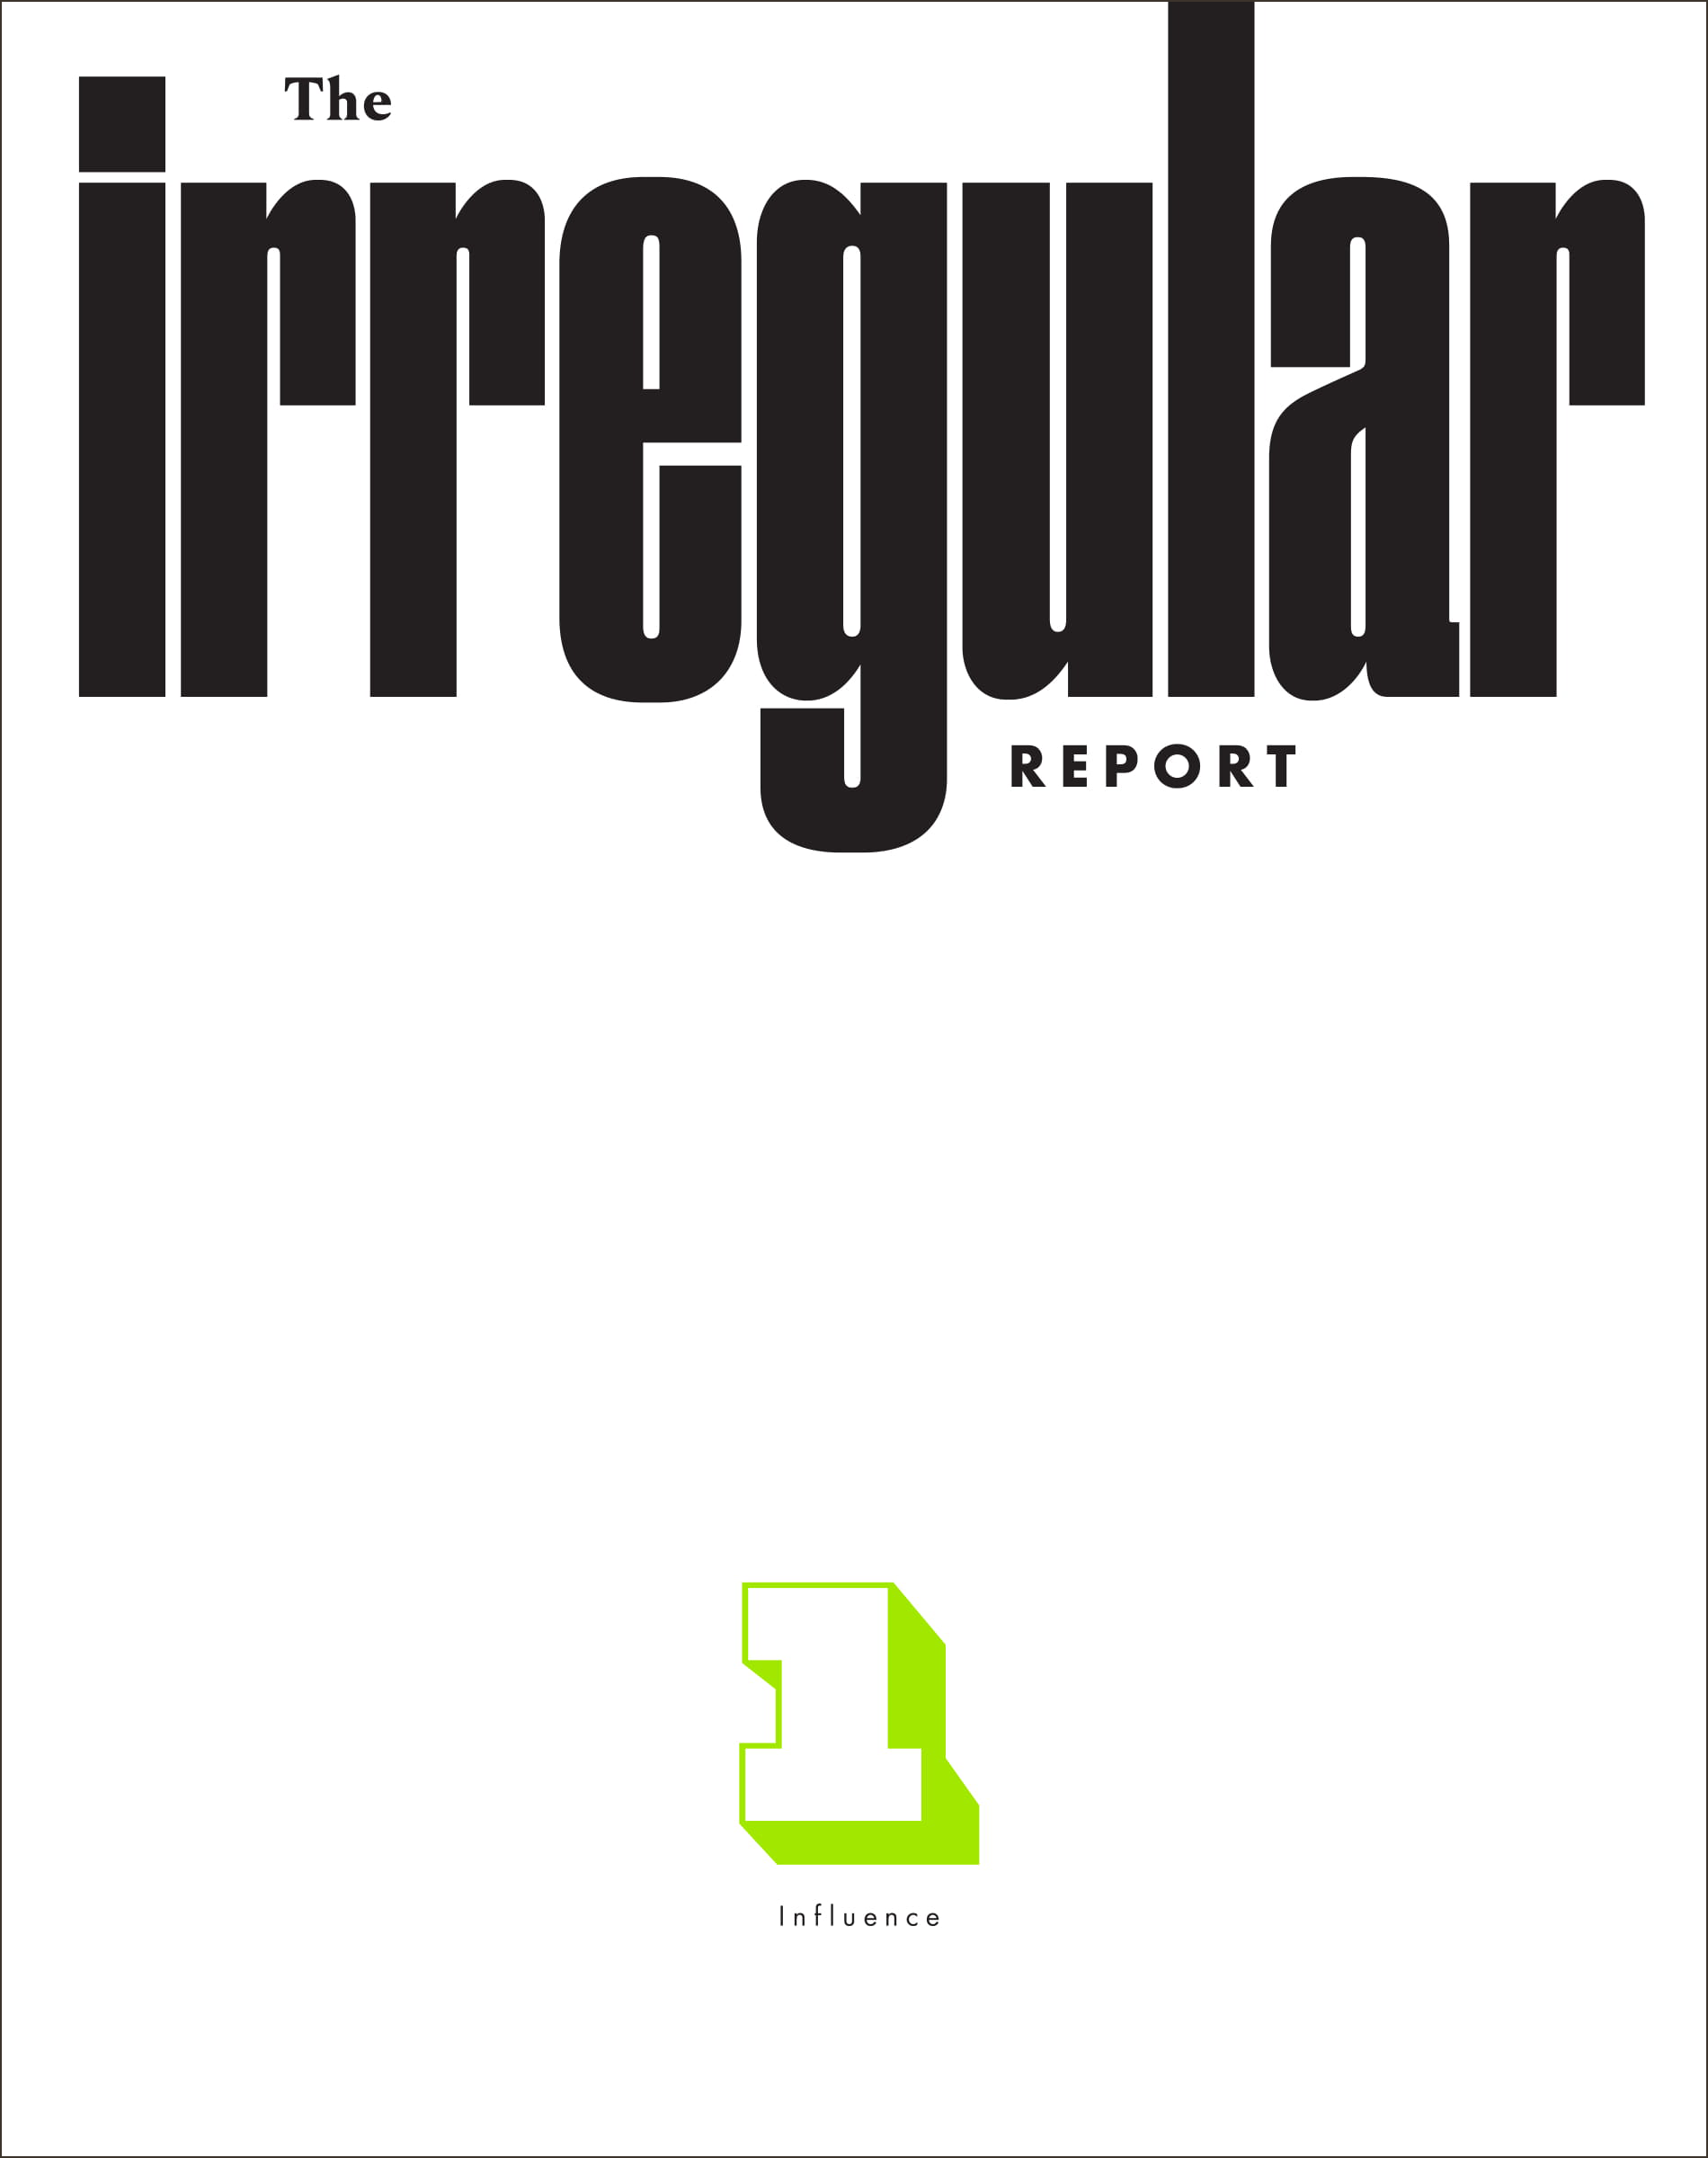 IR_INFLUENCE_COVER-1.png